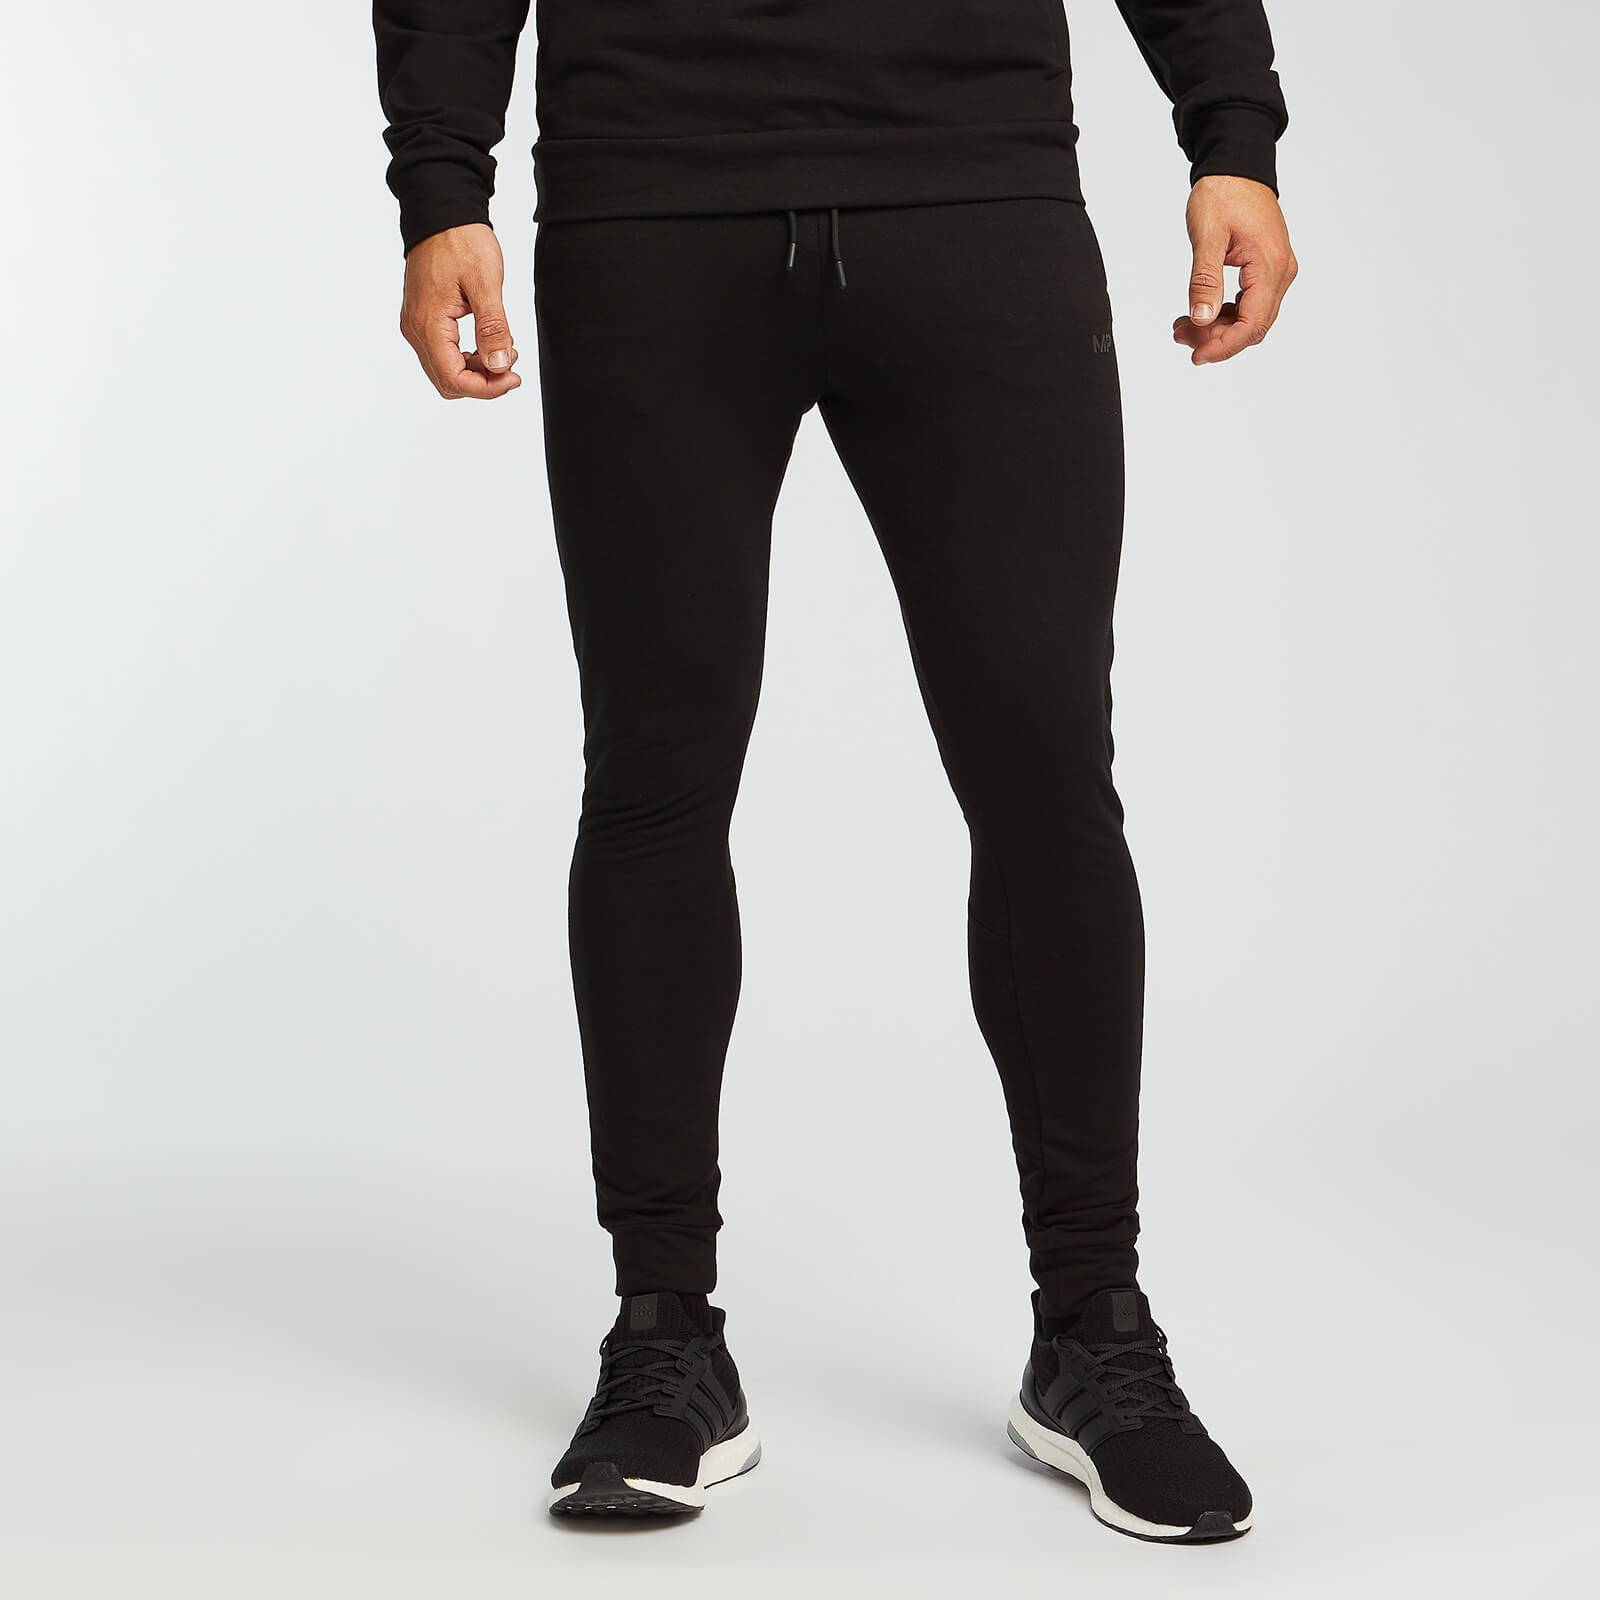 Myprotein Pantaloni da jogging slim fit MP Form da uomo - Neri - XS